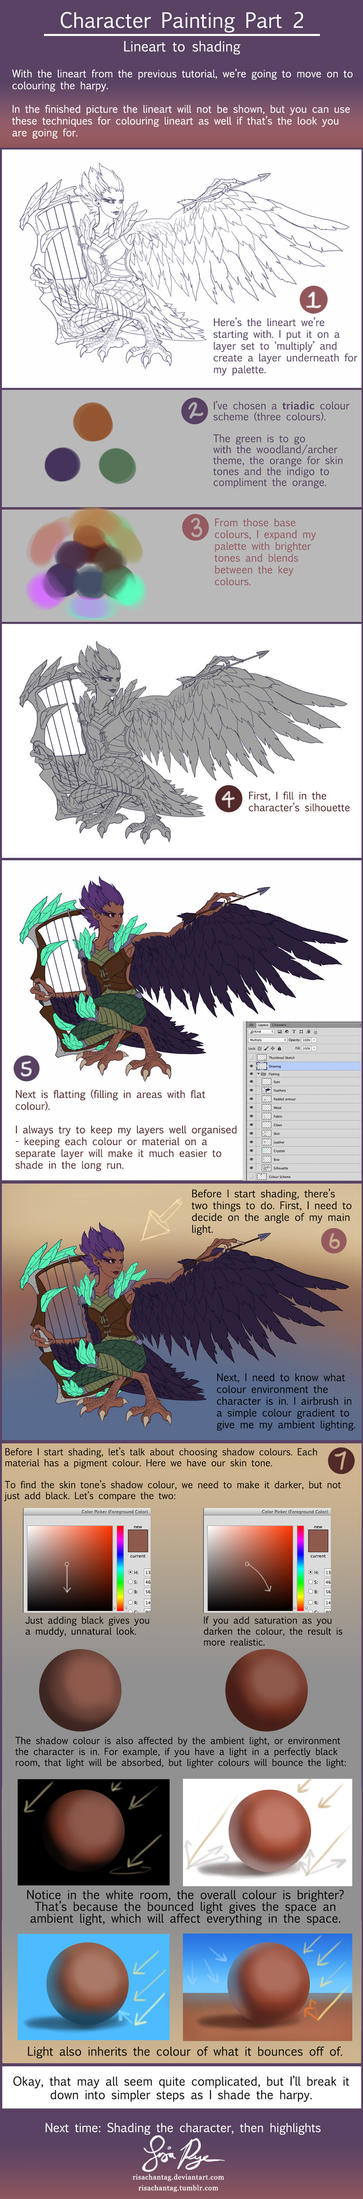 Character Painting Tutorial Part 2 by Risachantag